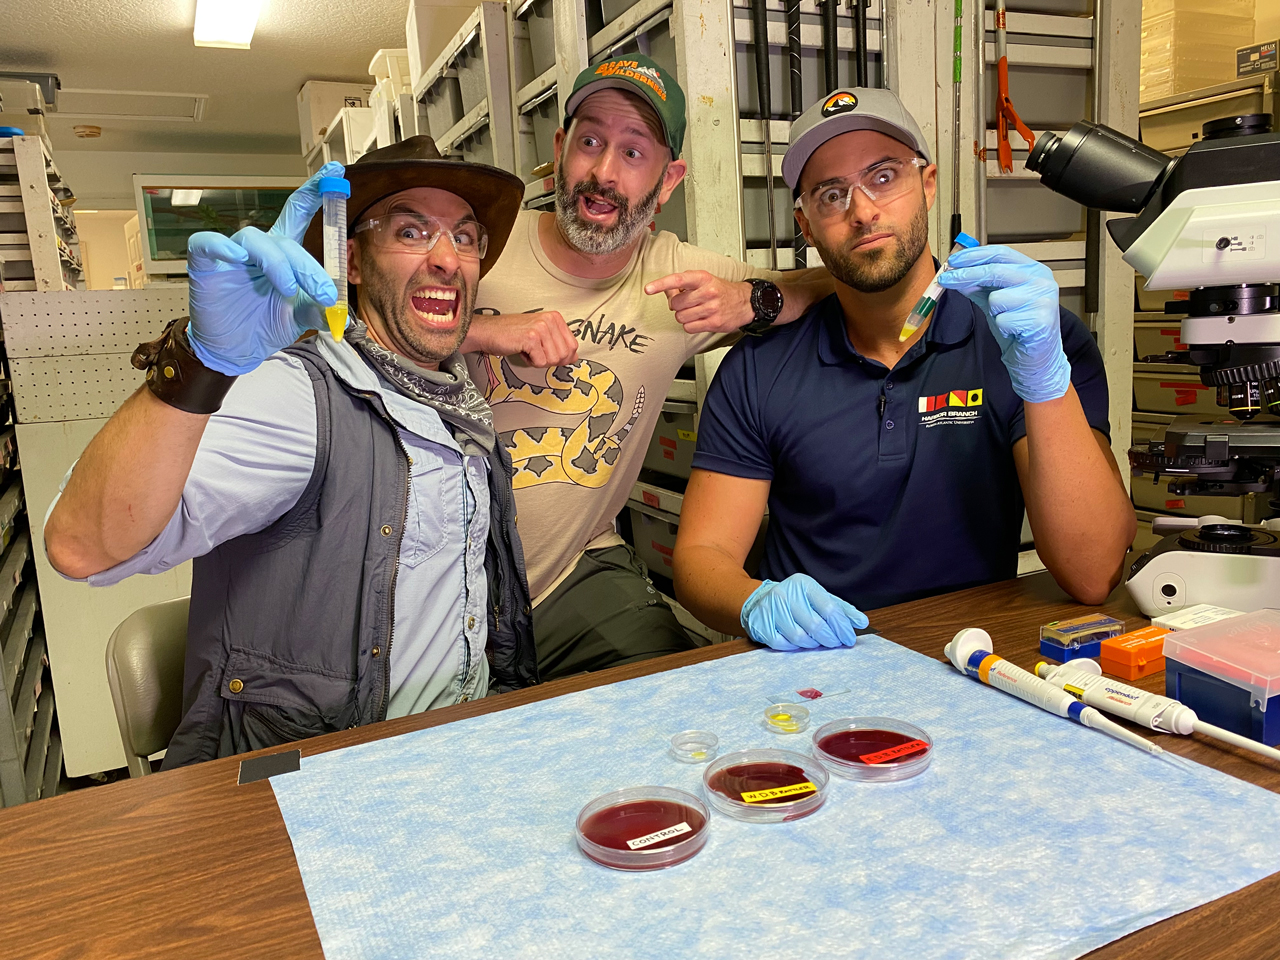 Still from Brave Wilderness YouTube video on mixing snake venom and human blood under the microscope starring Coyote Peterson, Mario Aldecoa and Dr. Hunter Hines